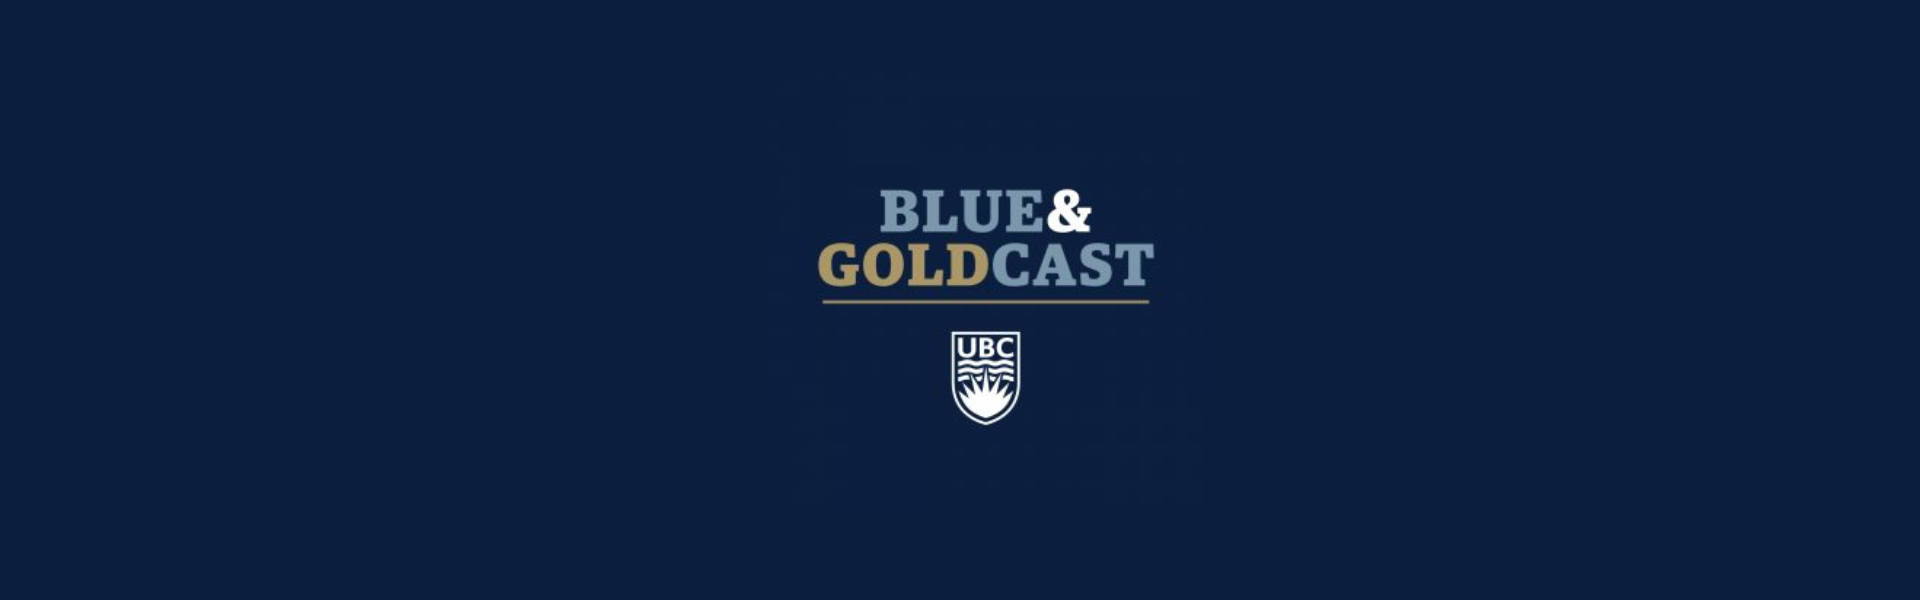 Banner image of the Blue and Goldcast logo with UBC emblem underneath on a UBC blue background.